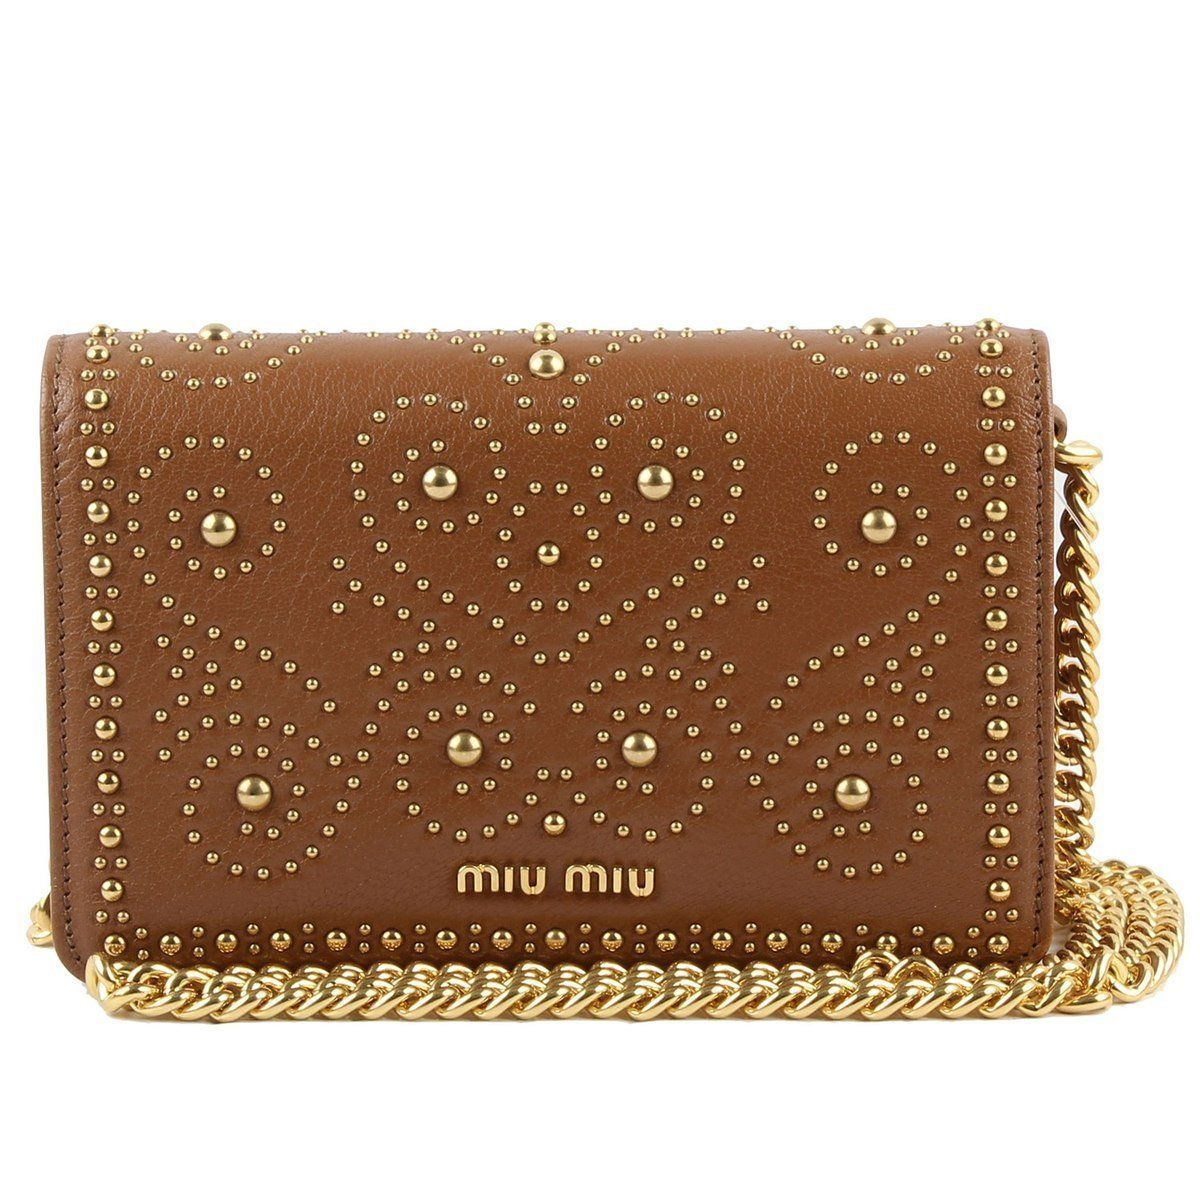 Miu Miu Prada Women's Tan Brown Gold Studded Madras Lux Crossbody 5BP006